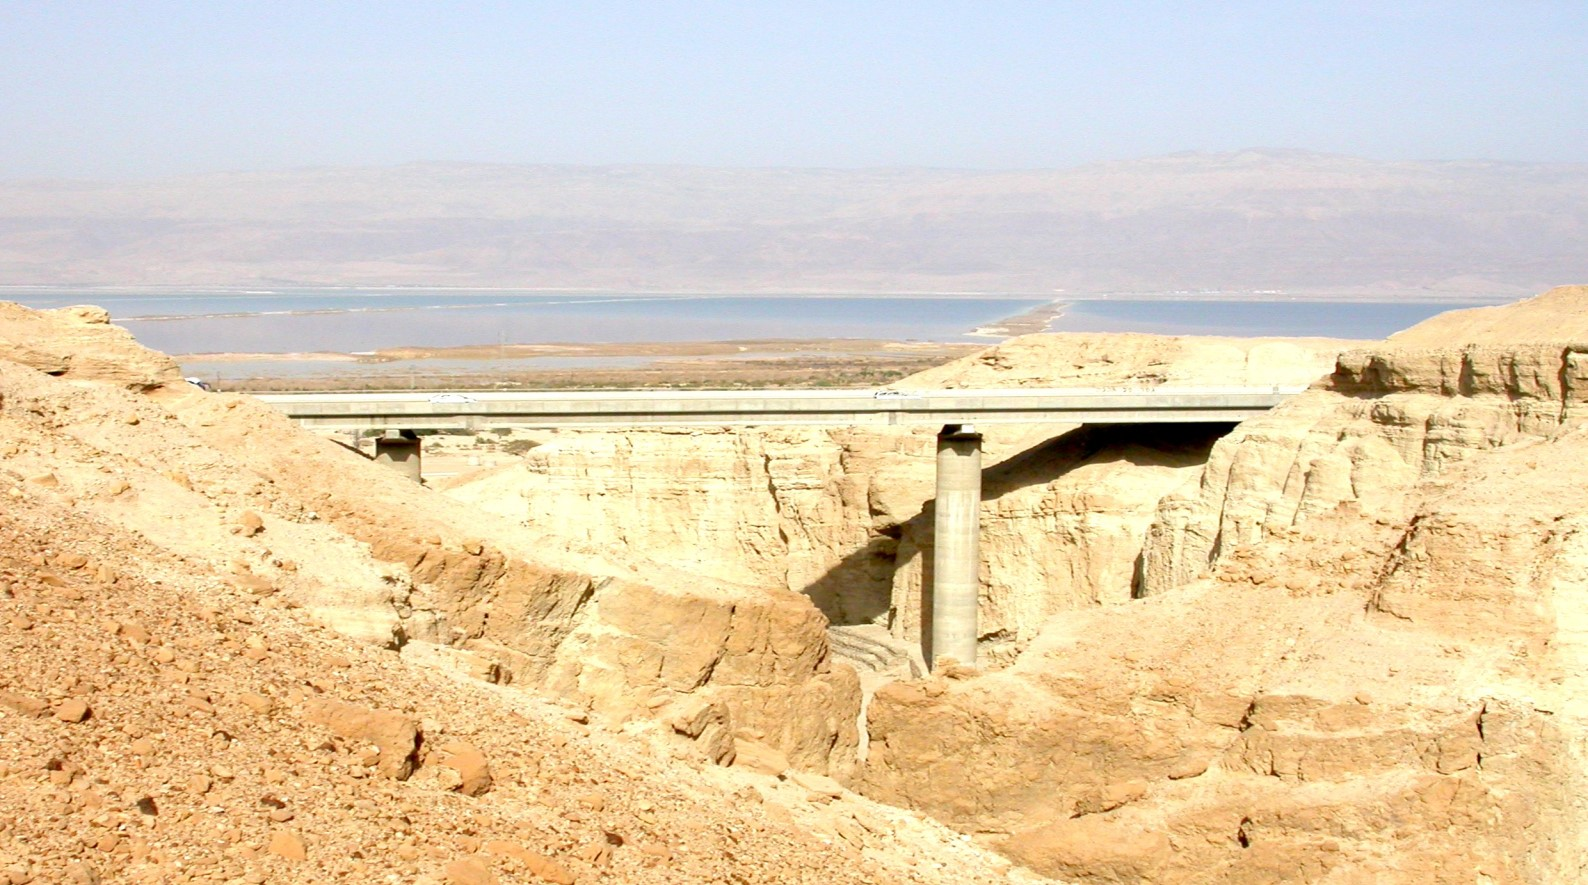 The Zohar Bridge with the Dead Sea in the background. Photo by Izhak Stern/YDE Engineers